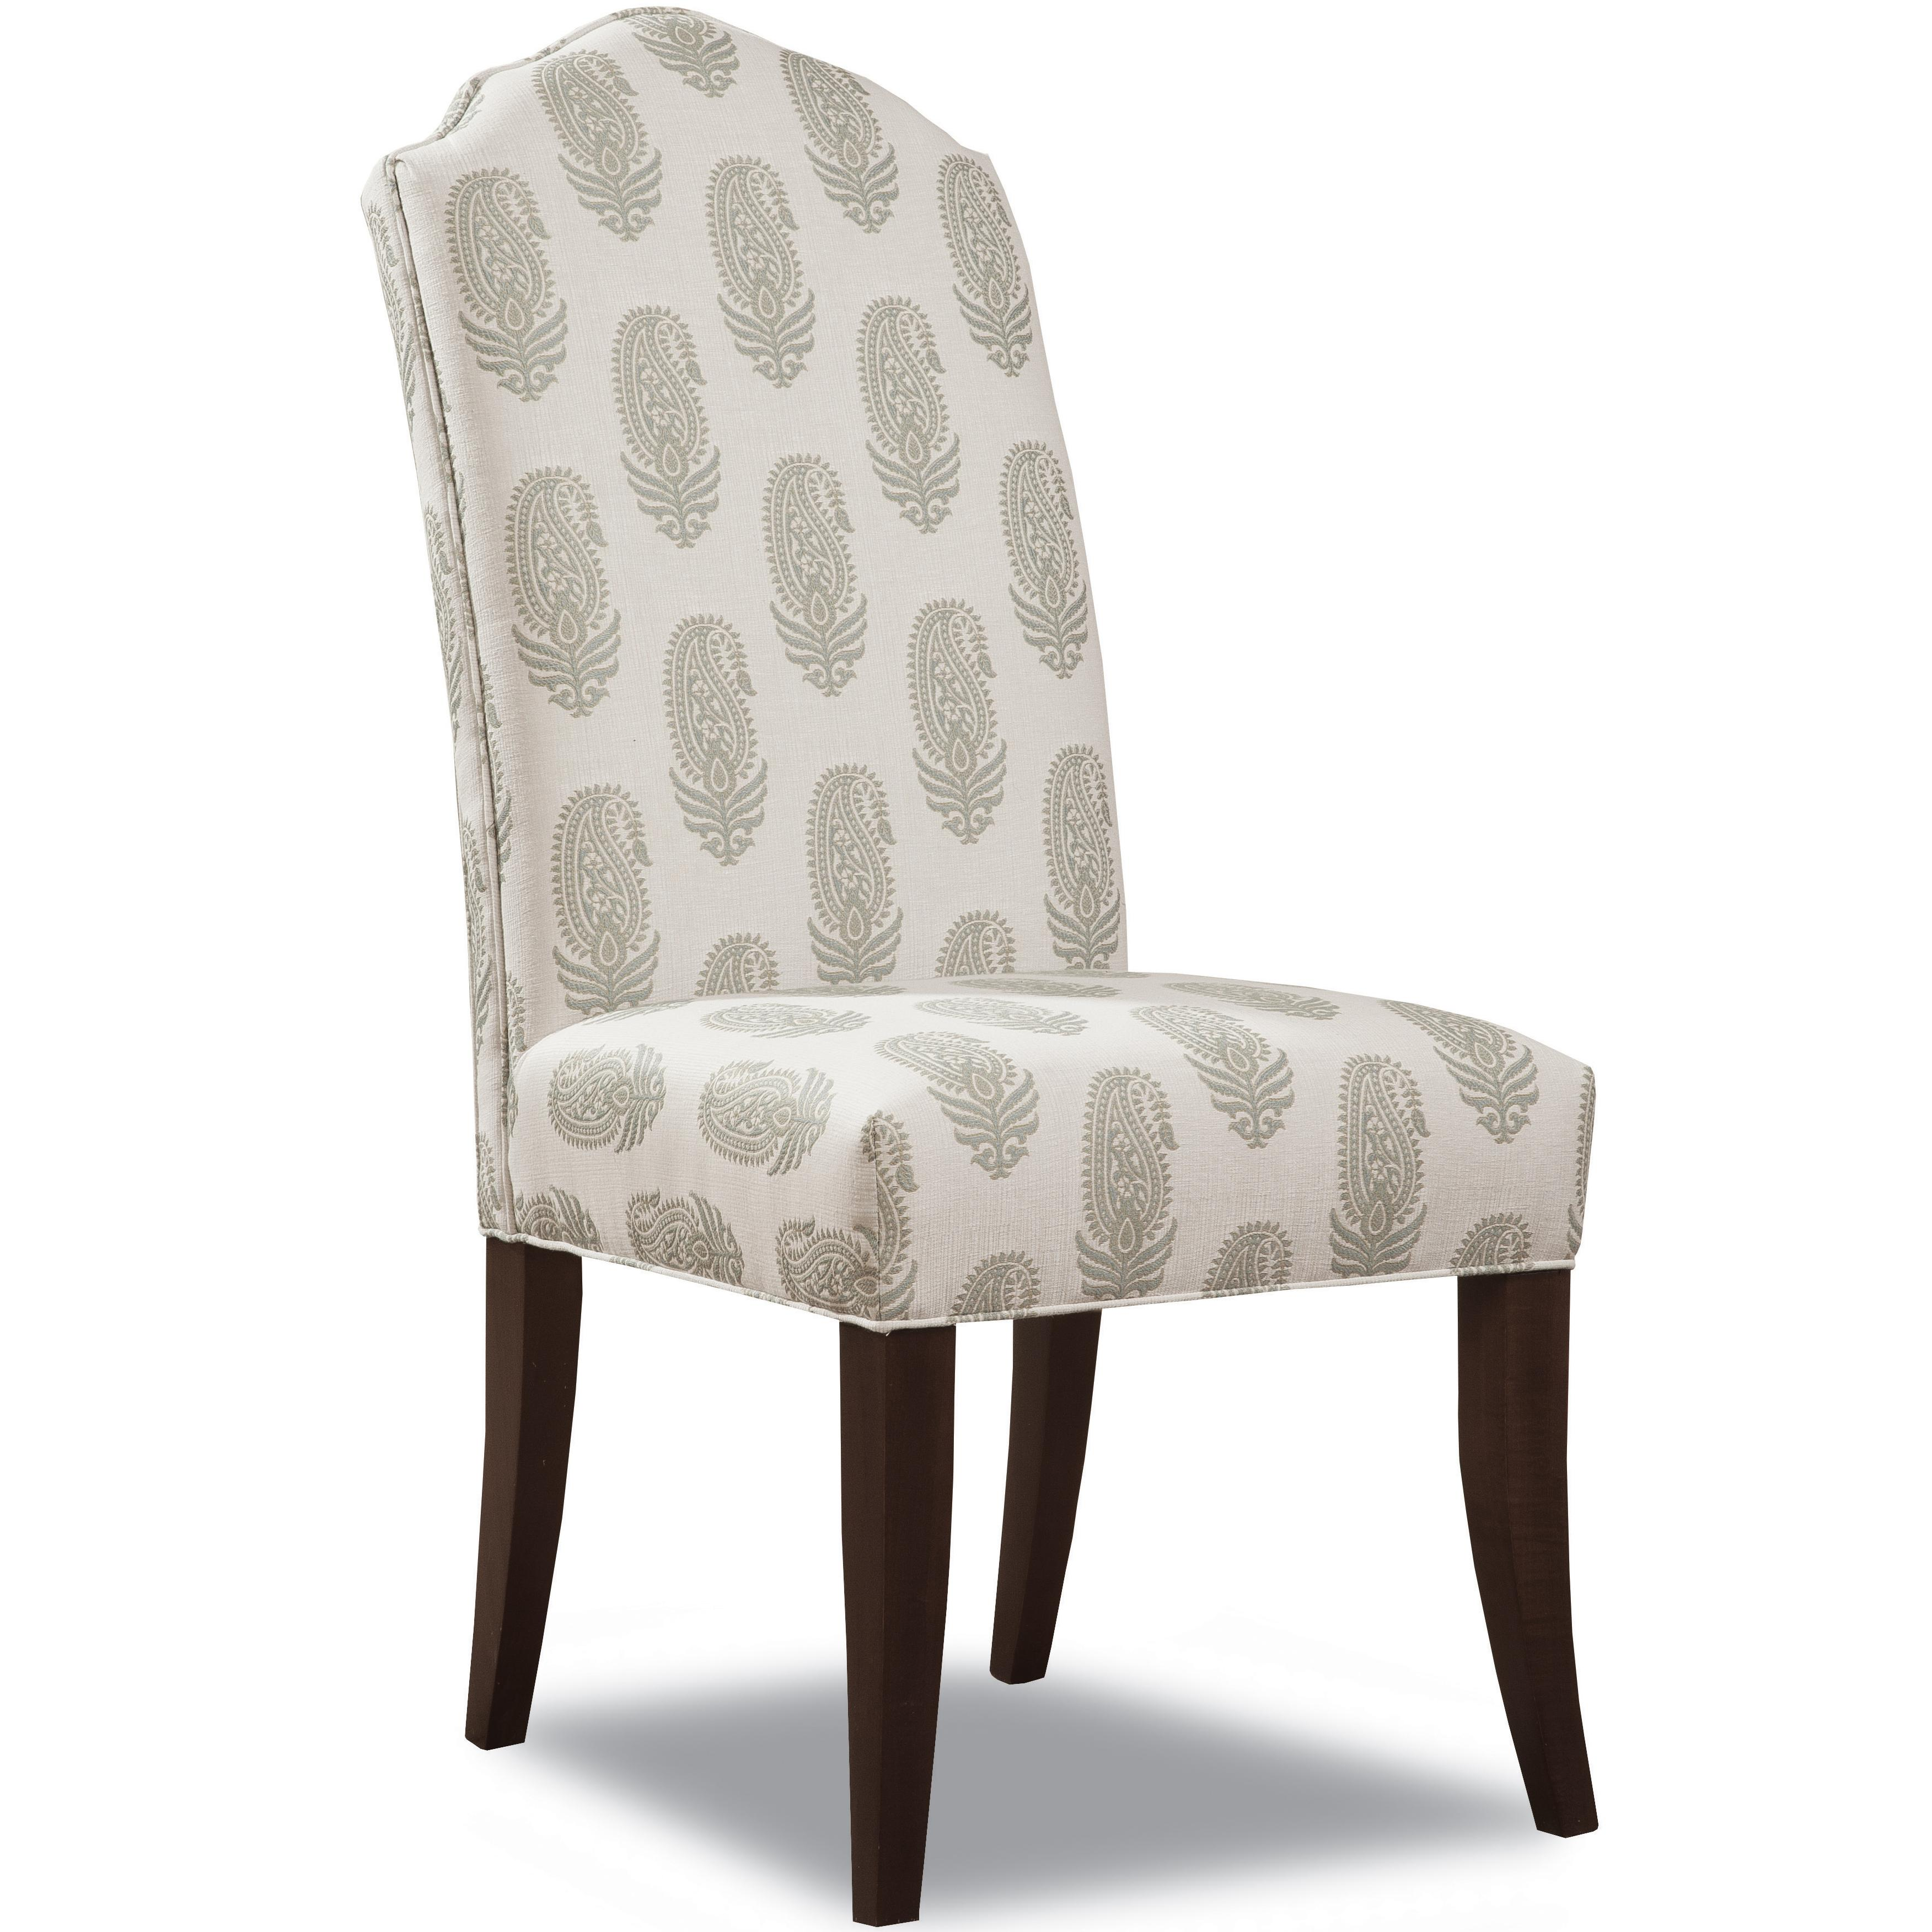 Huntington House 2407 Upholstered Dining Side Chair - Item Number: 2407-51-Feather